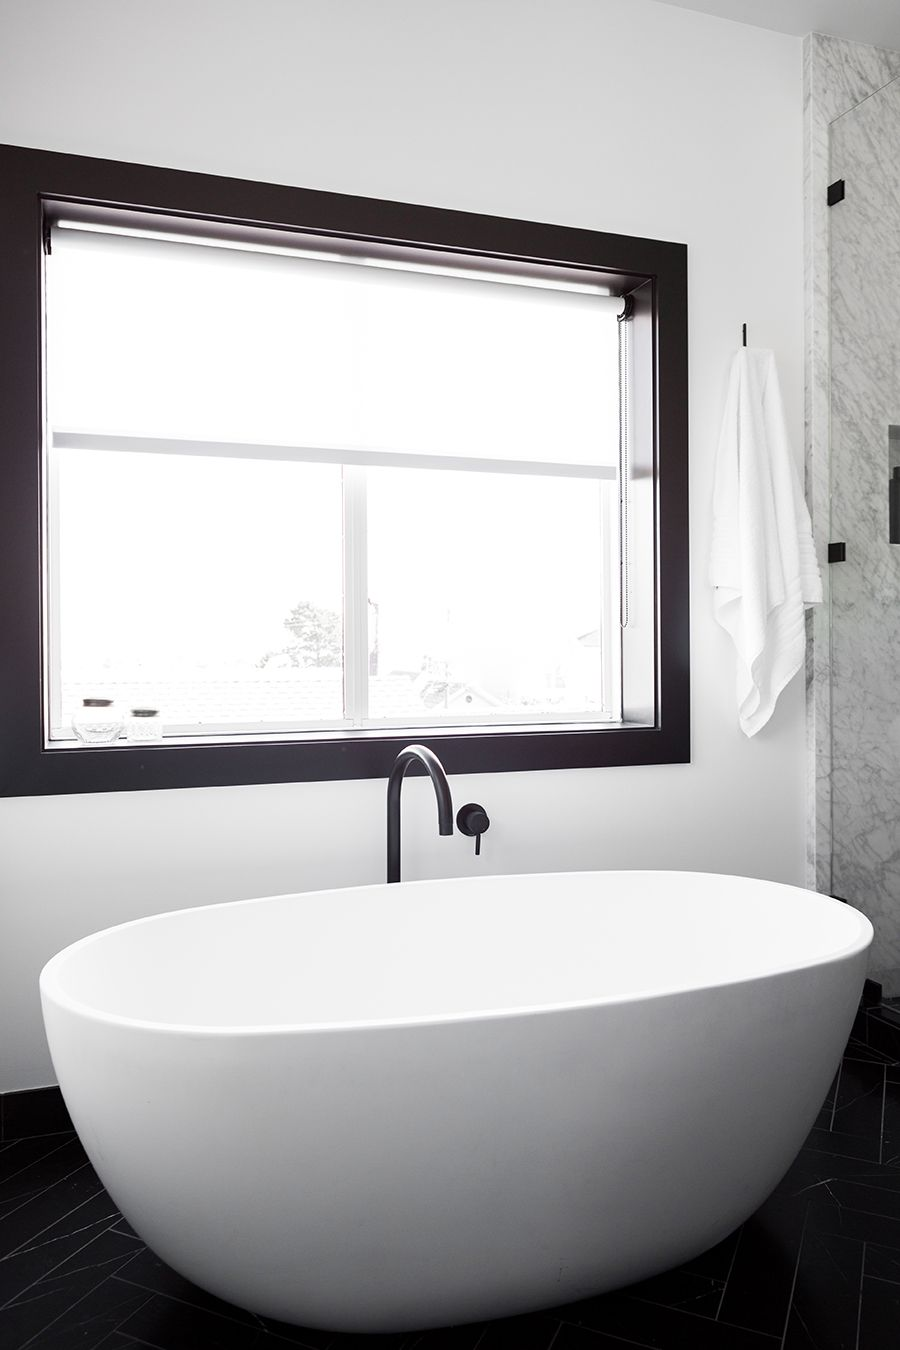 Bathroom Design San Francisco Brilliant San Francisco Apartment  Interior Design  Bathroom  Bathtub Review